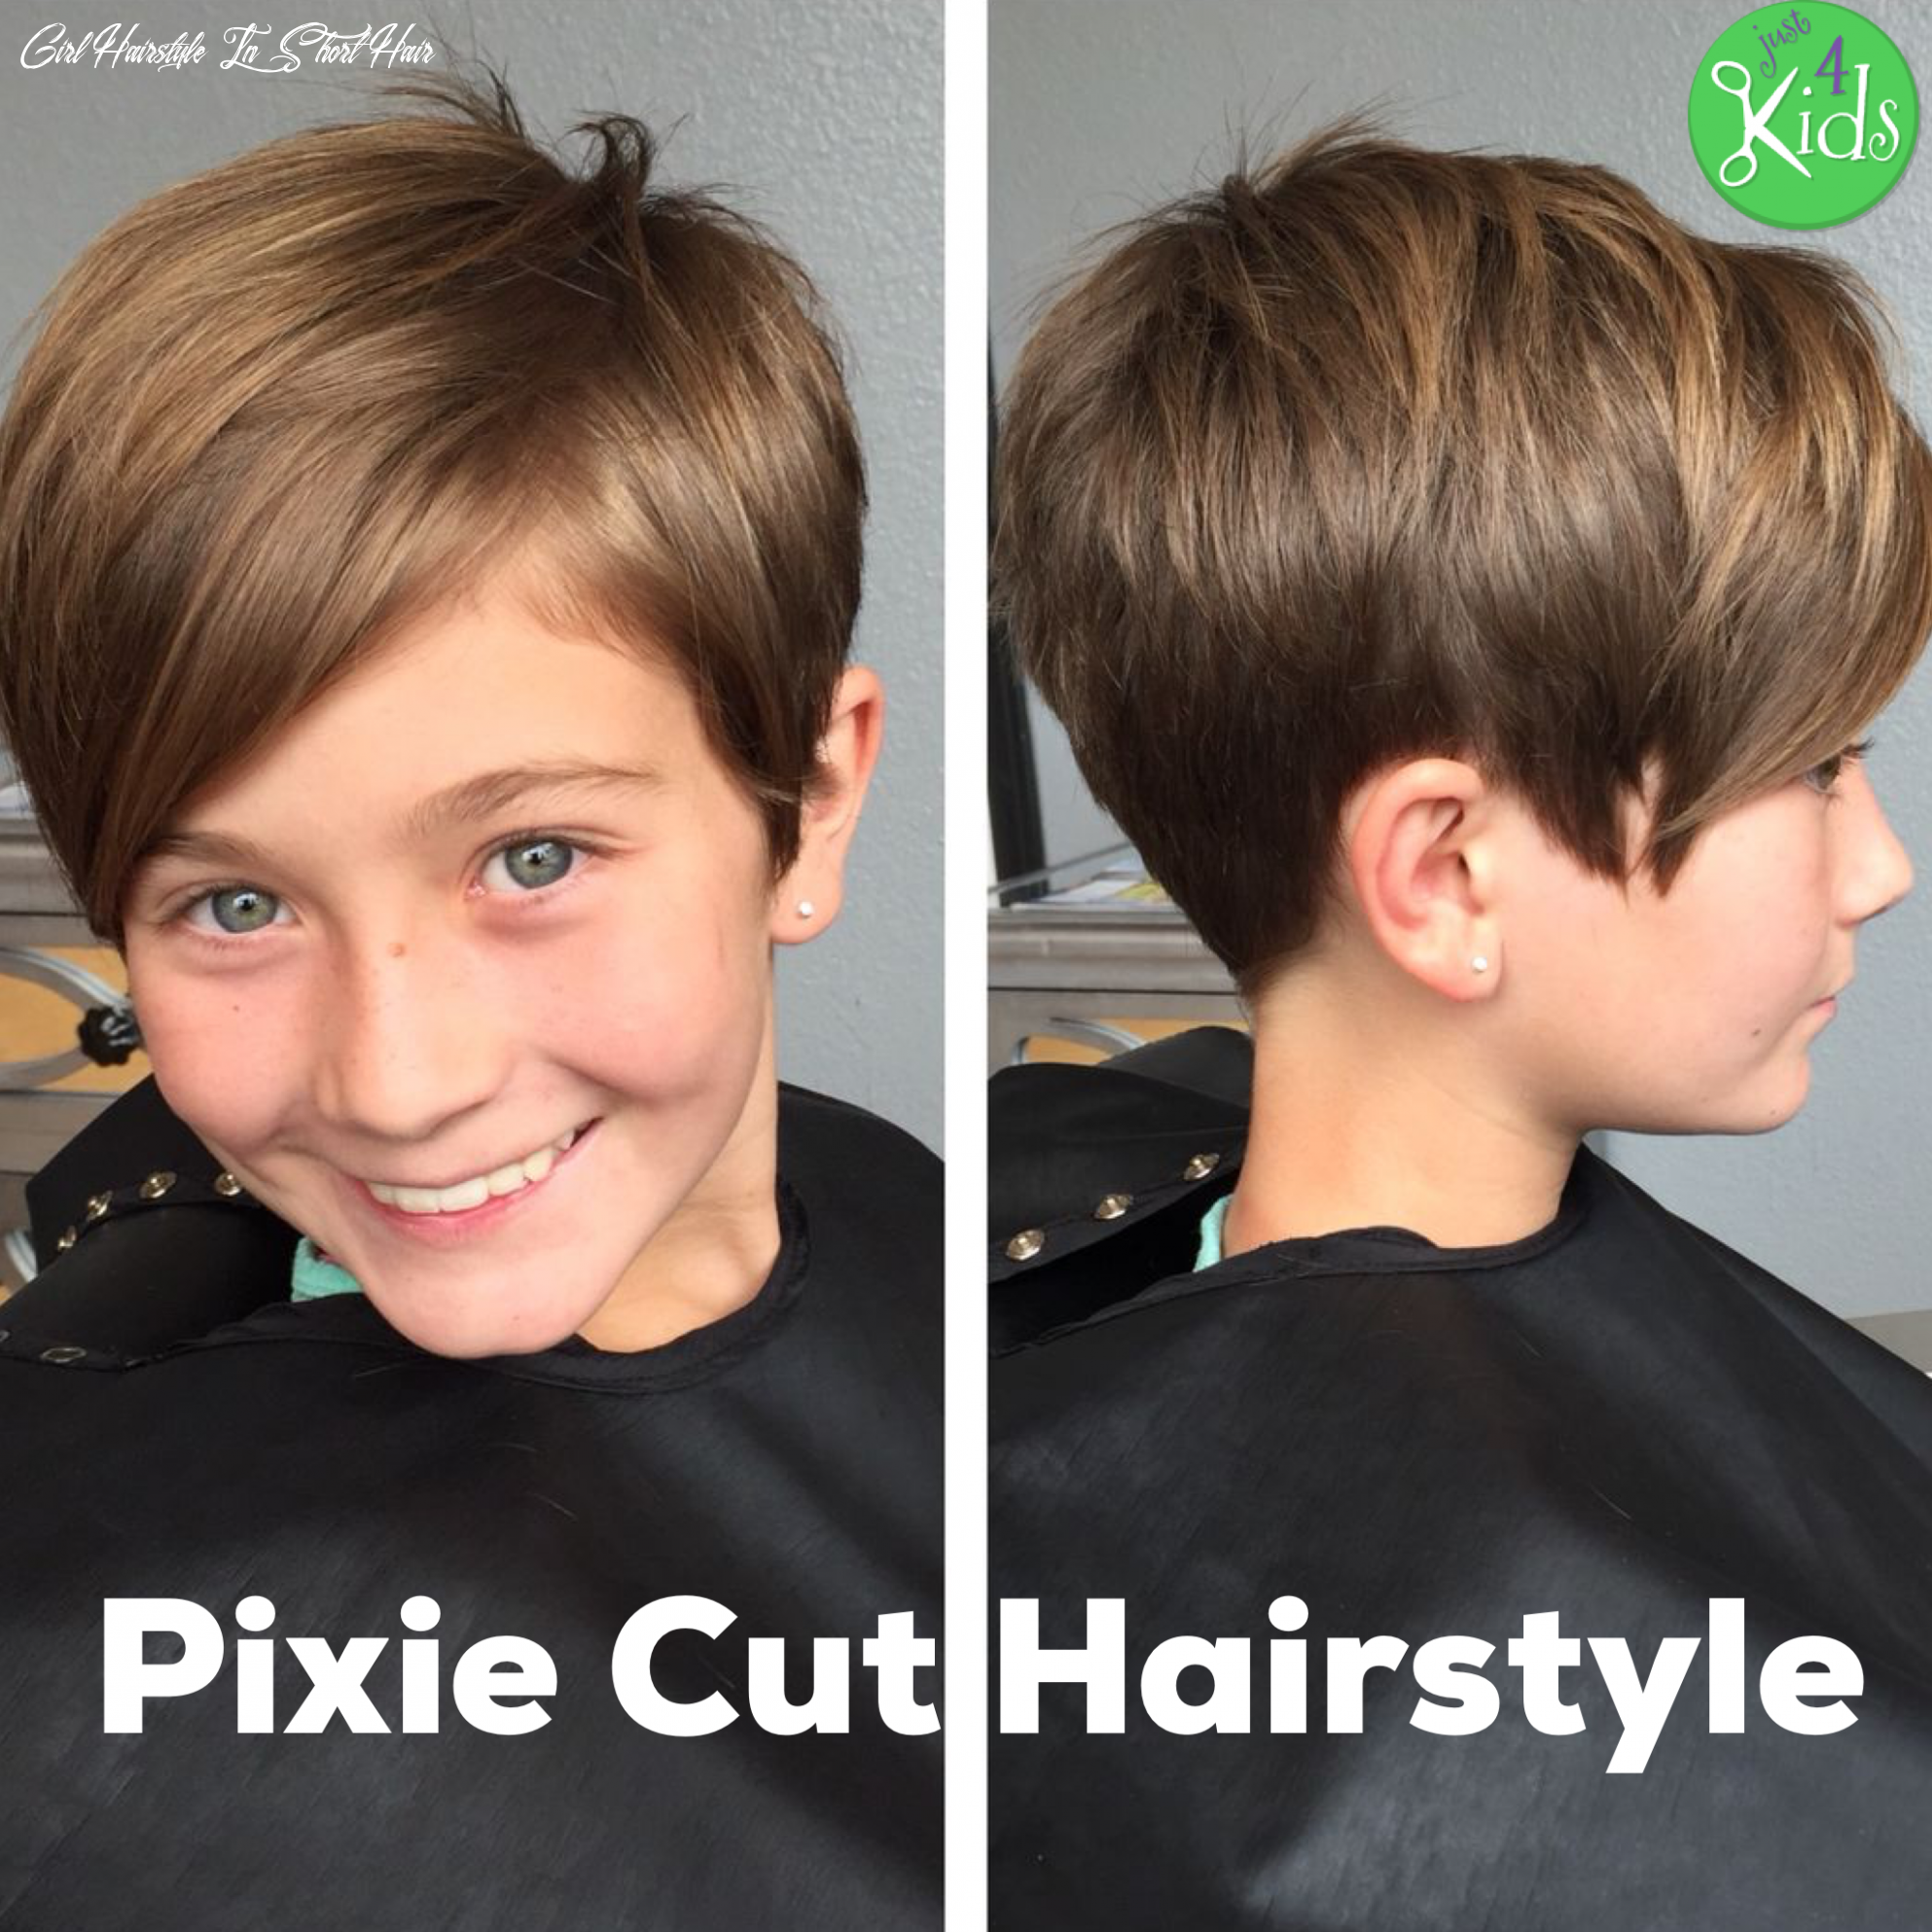 Top kids hairstyles 12 best back to school haircuts for short